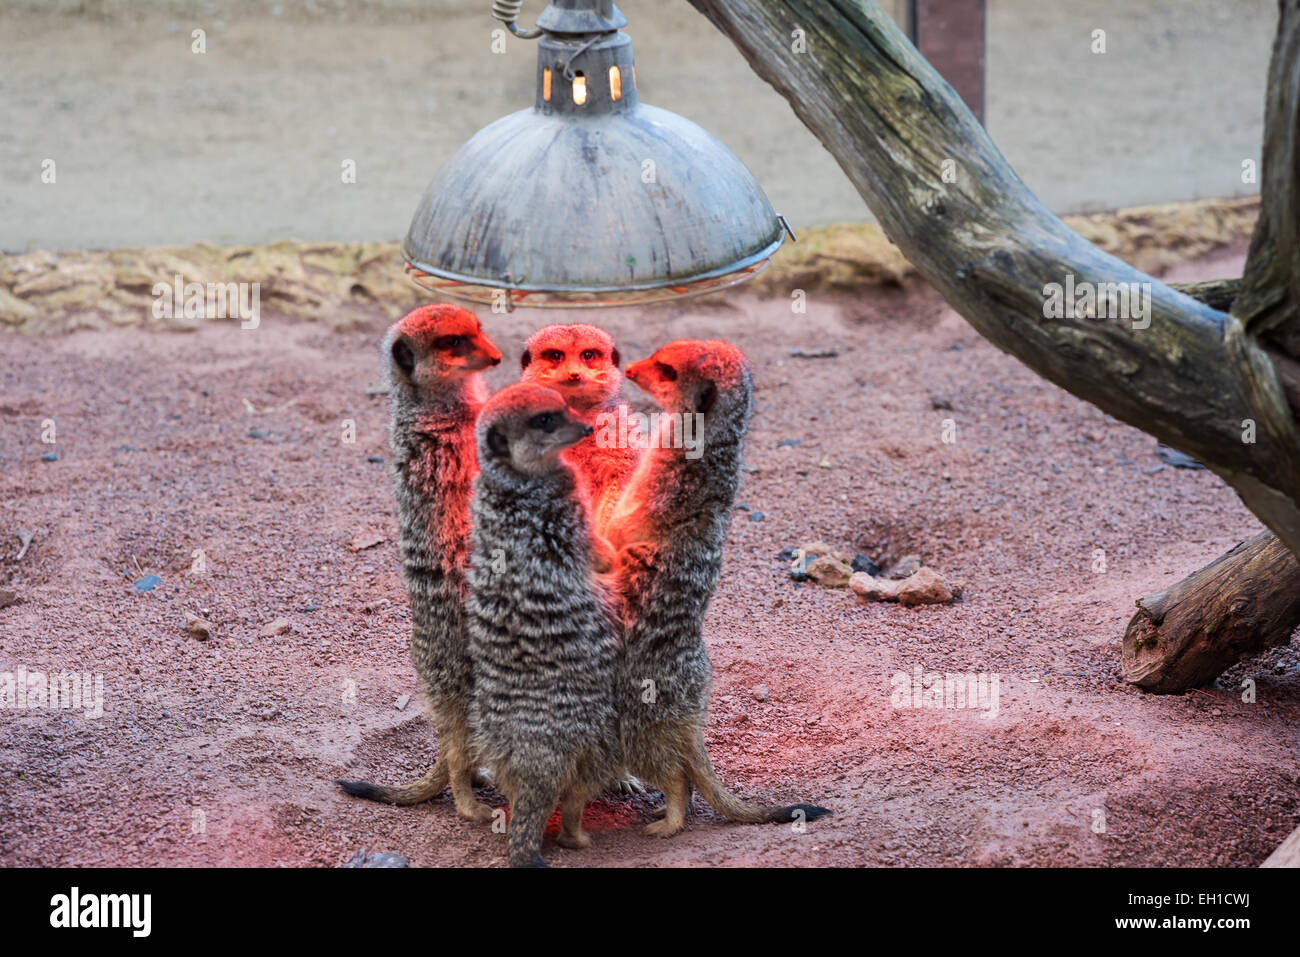 Heat Lamp Stock Photos Amp Heat Lamp Stock Images Alamy